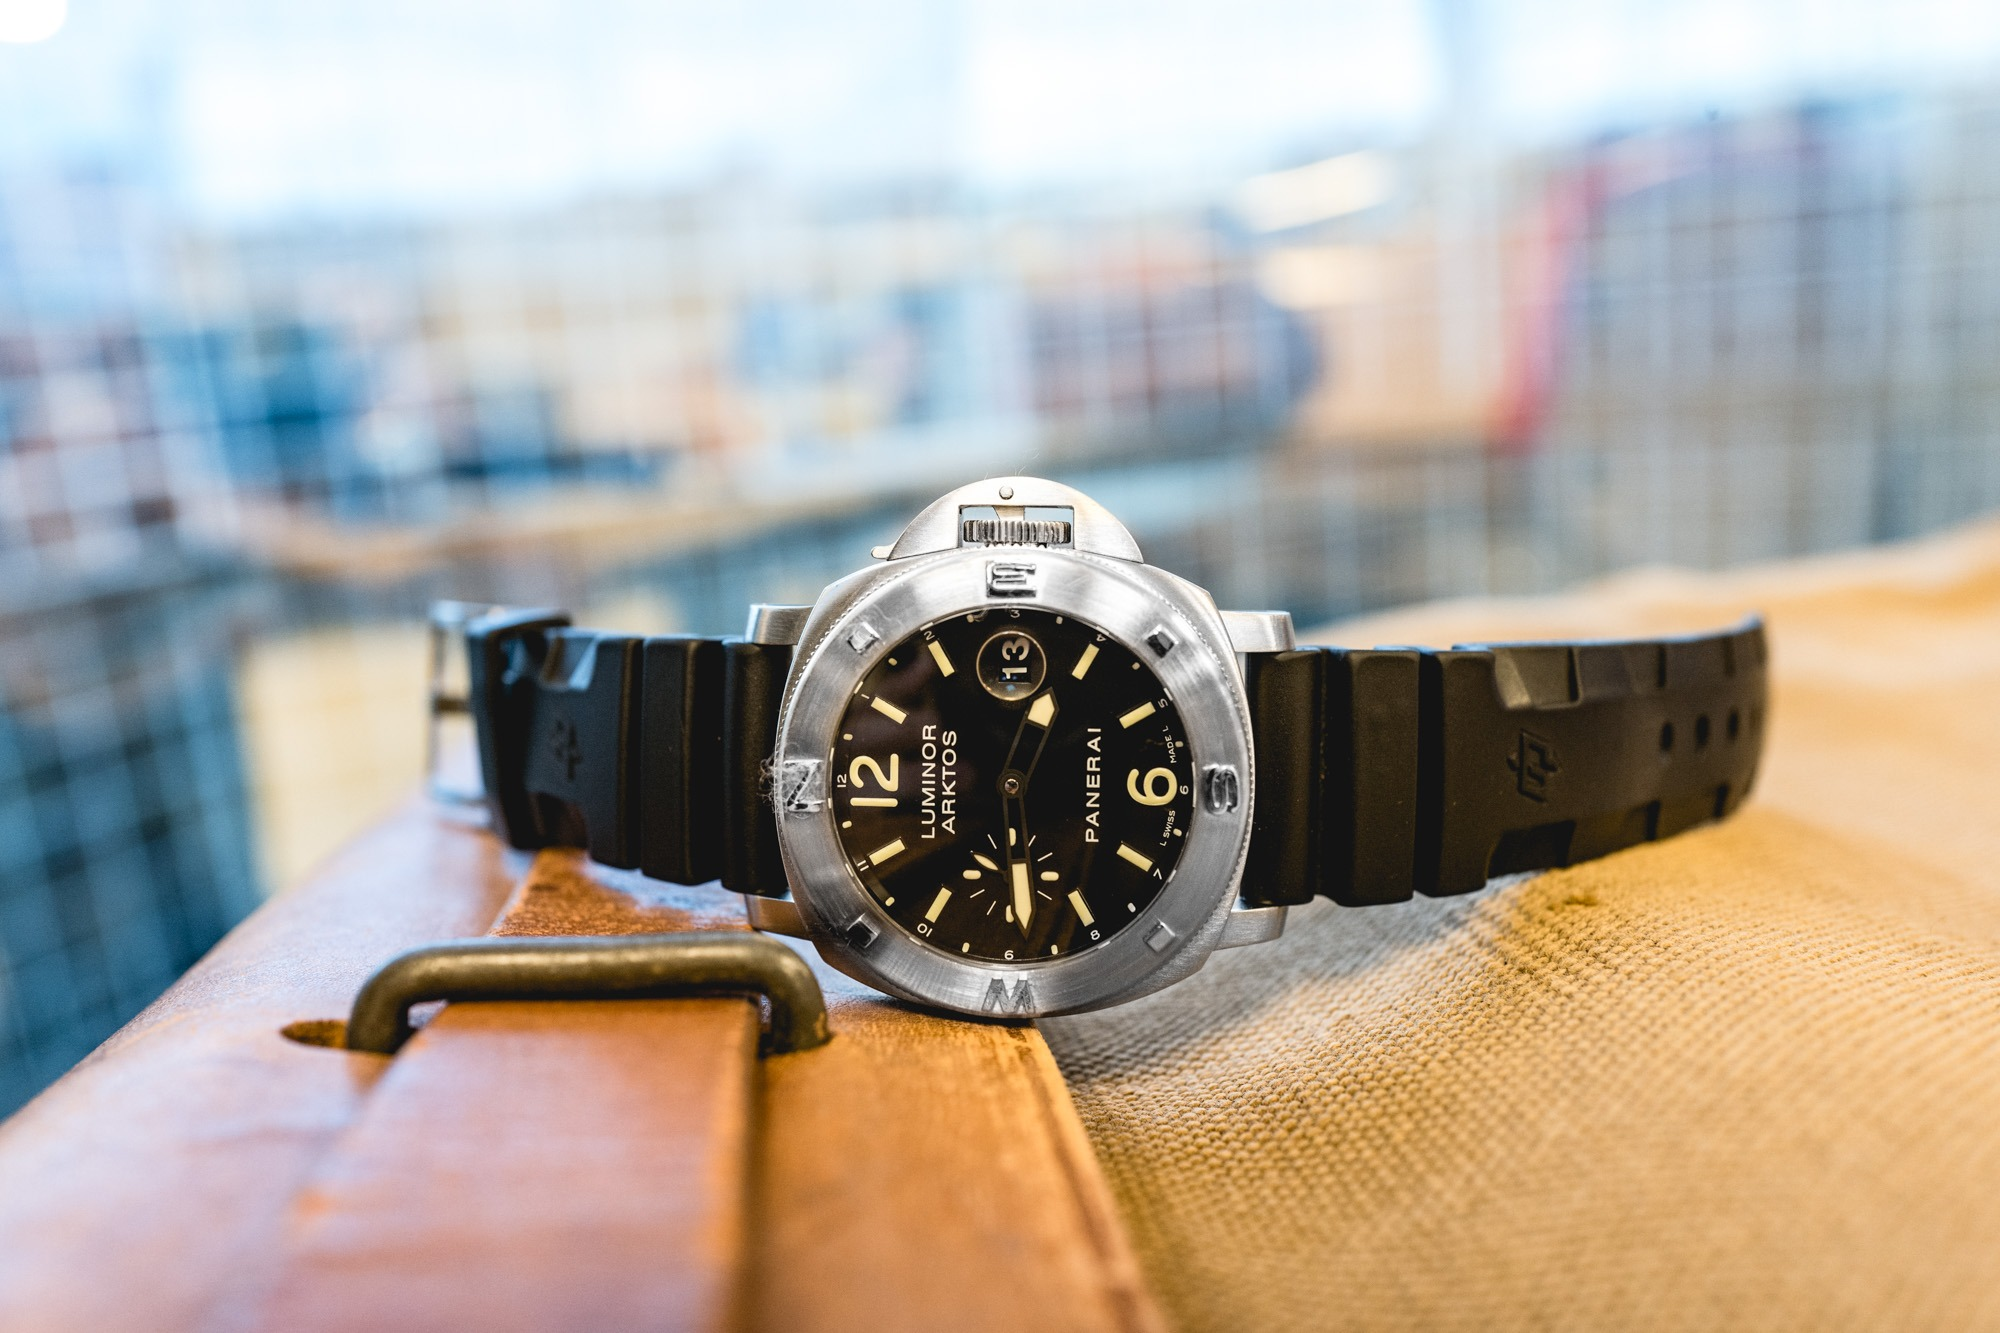 Panerai Luminor Submersible ARKTOS - Mike Horn